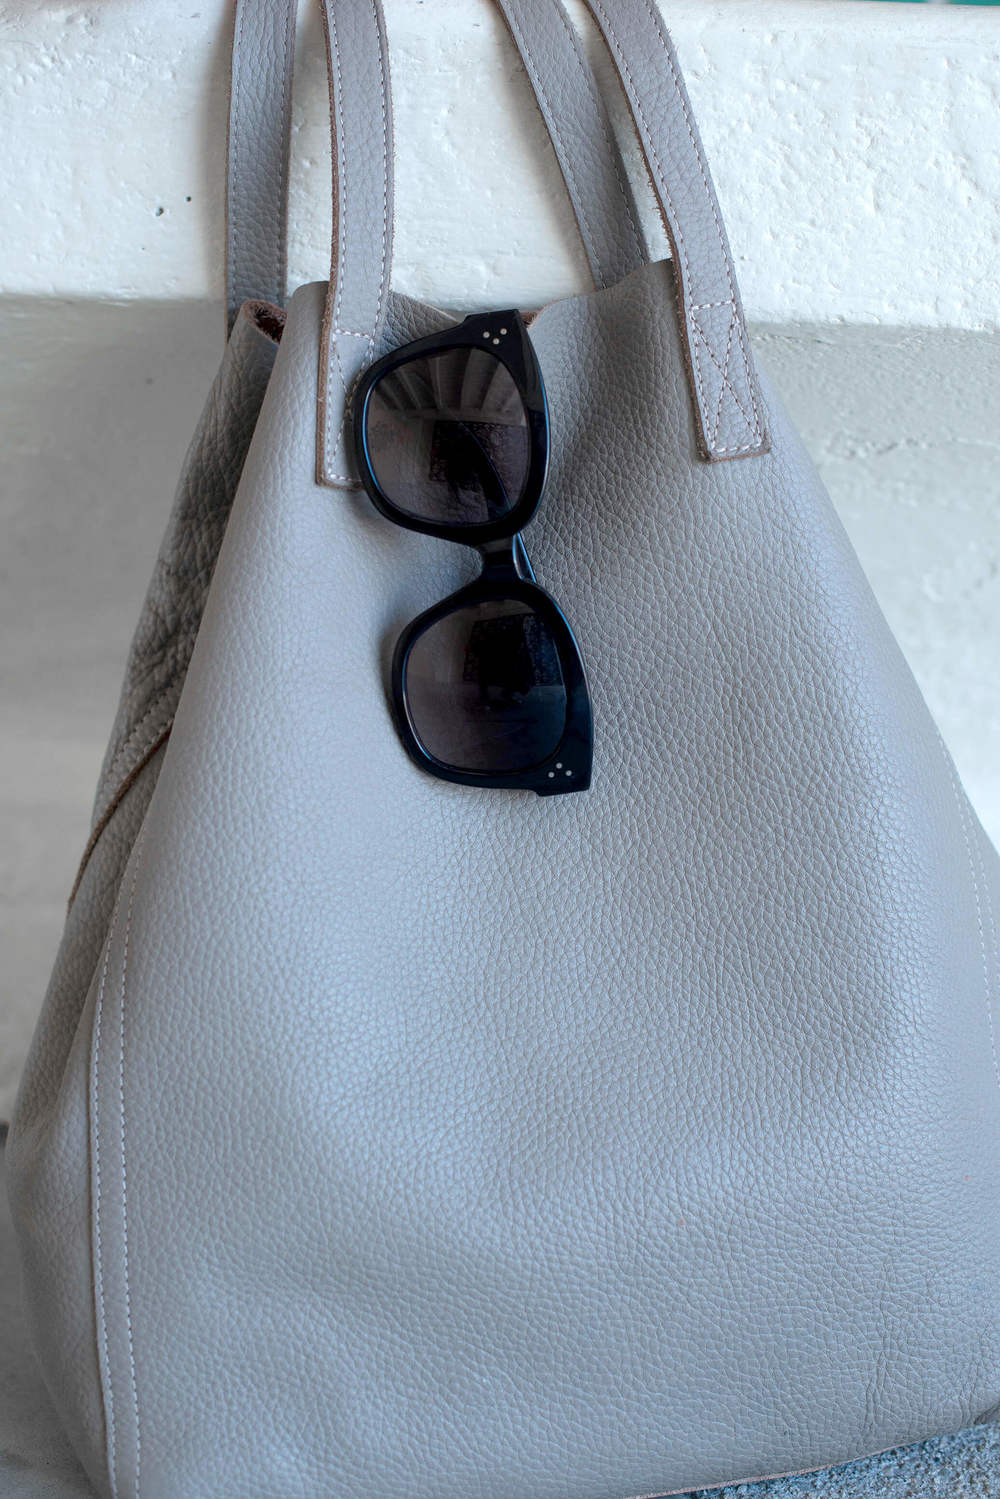 cuyana tote and celine audrey sunglasses